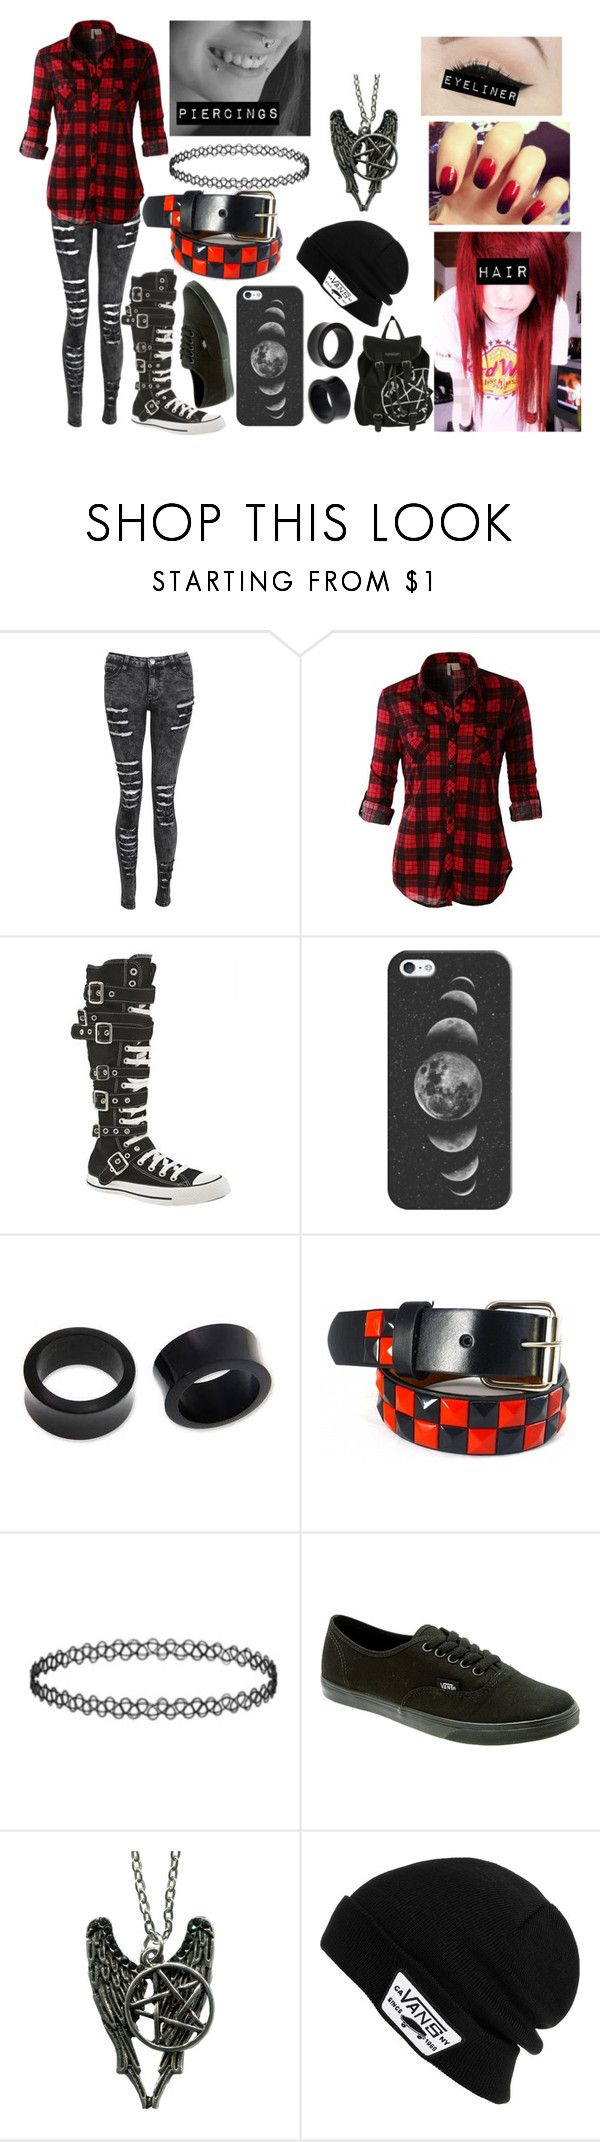 """Red Flannel Scene/Emo"" by abipatterson ❤ liked on Polyvore featuring LE3NO, Converse, Hot Topic, Casetify, NOVICA, Vans and Anatomy Of"